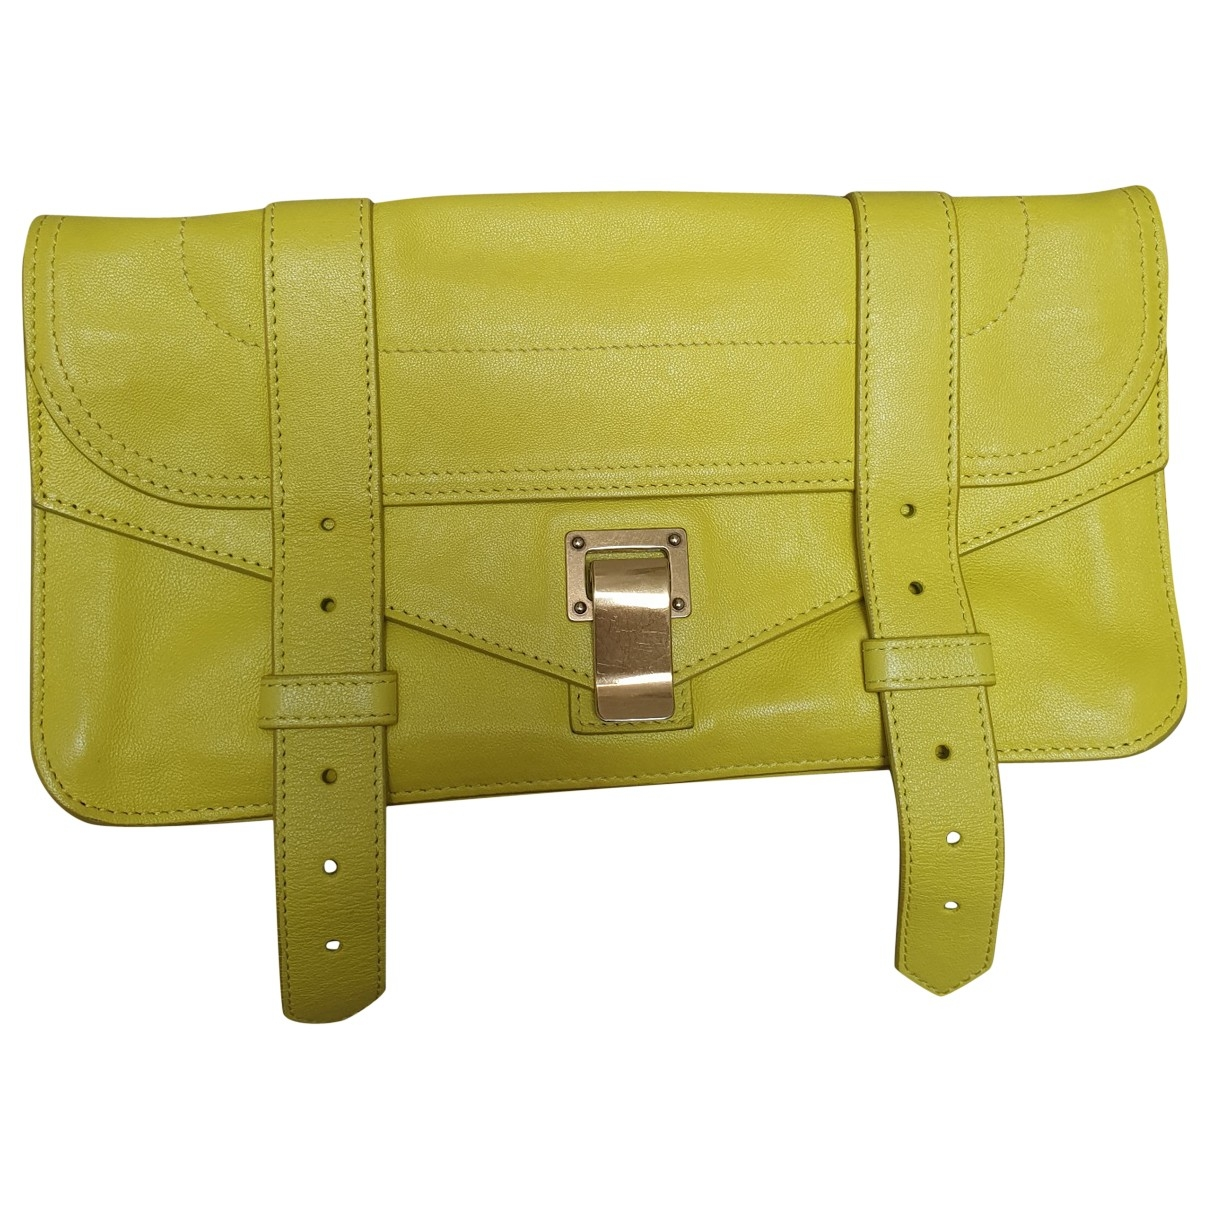 Proenza Schouler PS1 Tiny  Yellow Leather Clutch bag for Women \N